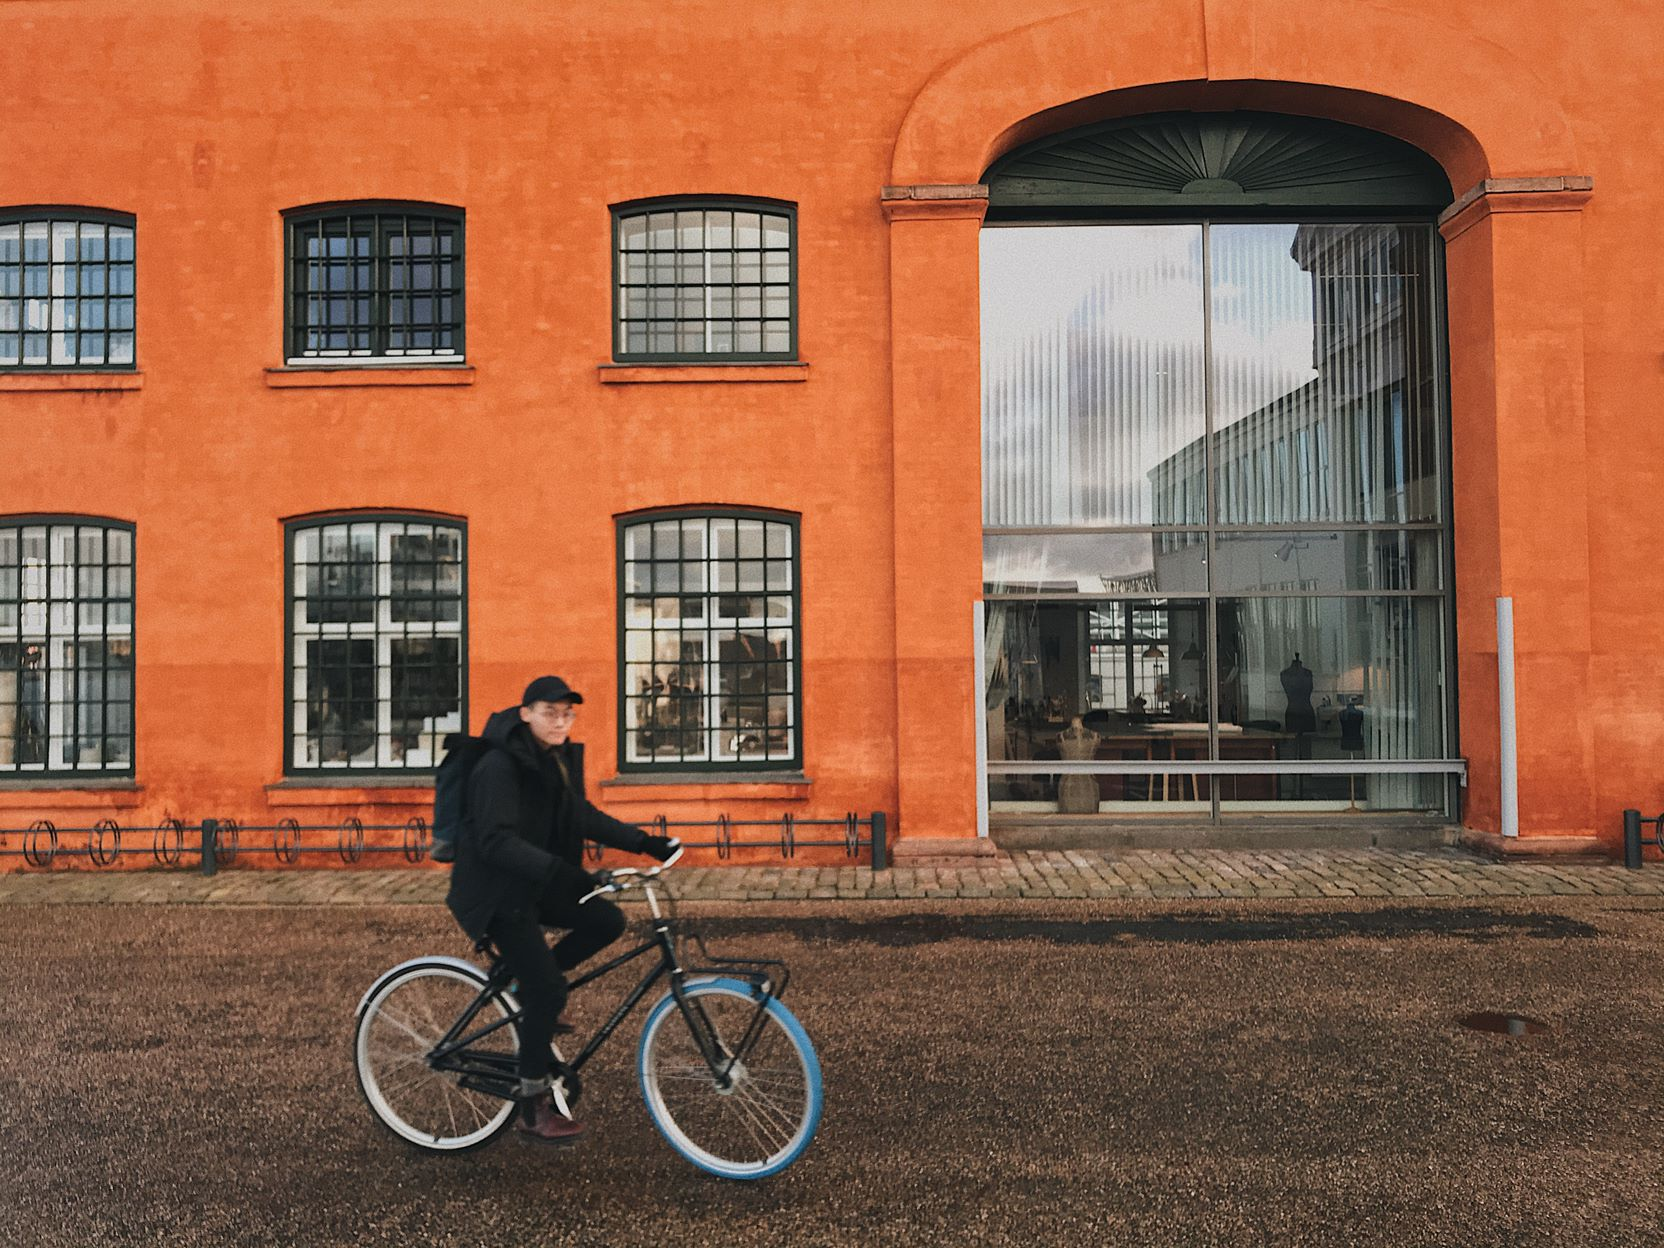 A bright orange building in the background with a young Asian man on a bike cycling past it